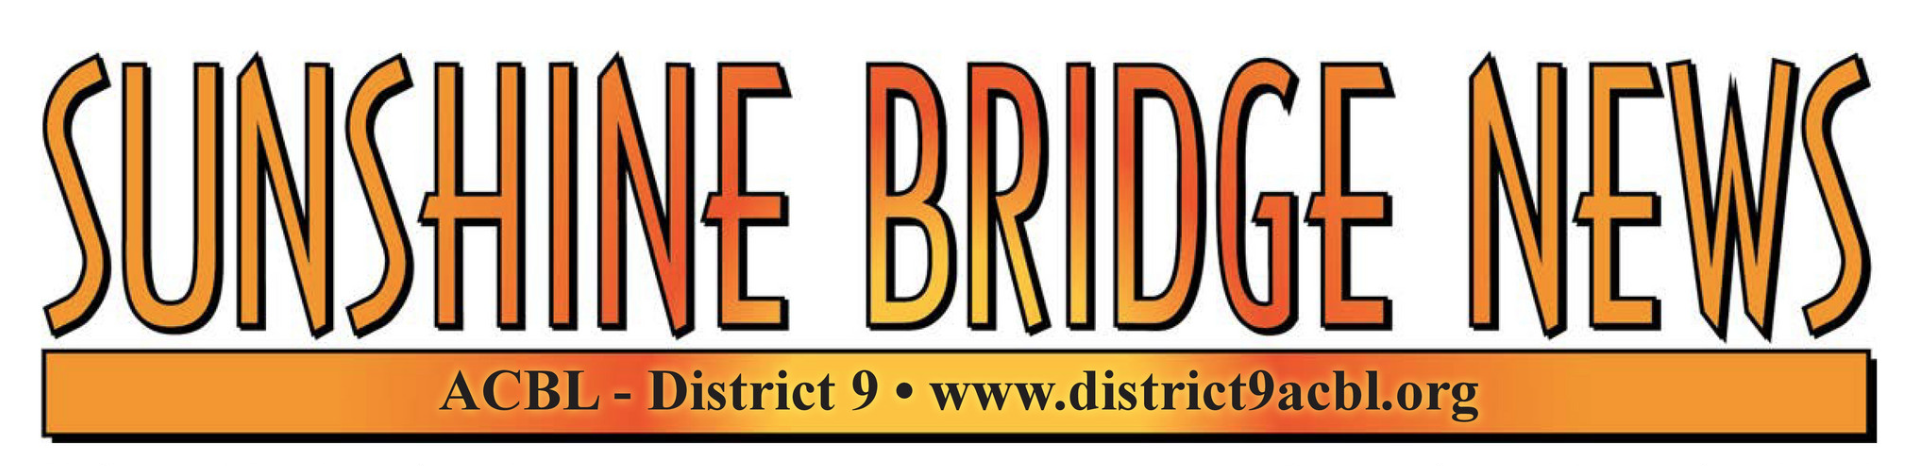 Sunshine Bridge News